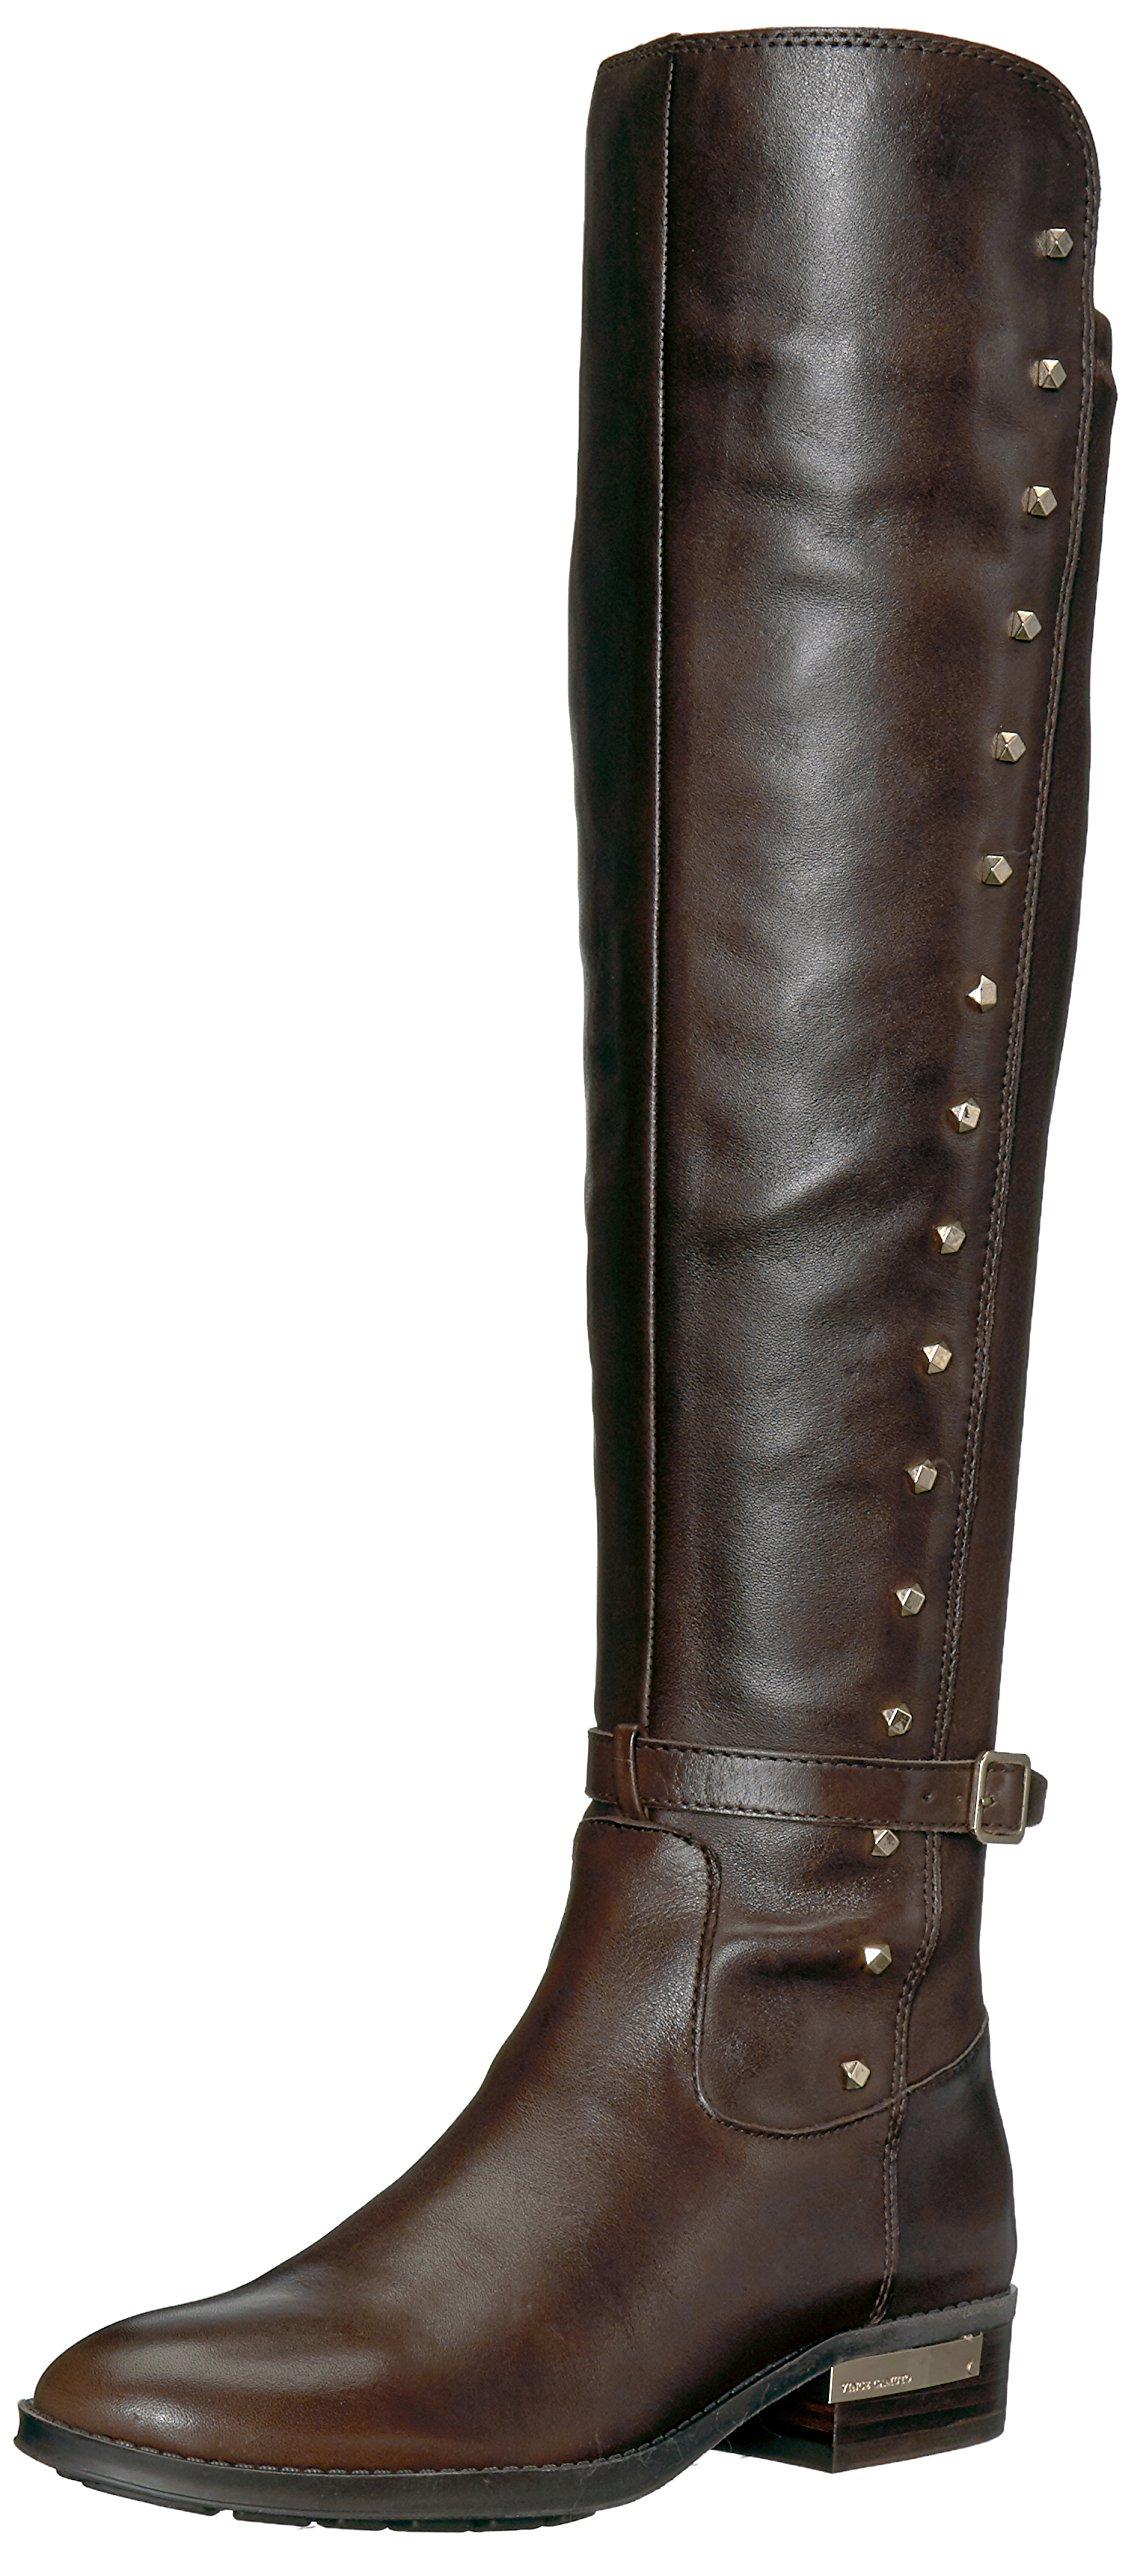 Vince Camuto Women's Pelda Over The Knee Boot, Fudge Brownie, 7.5 Medium US